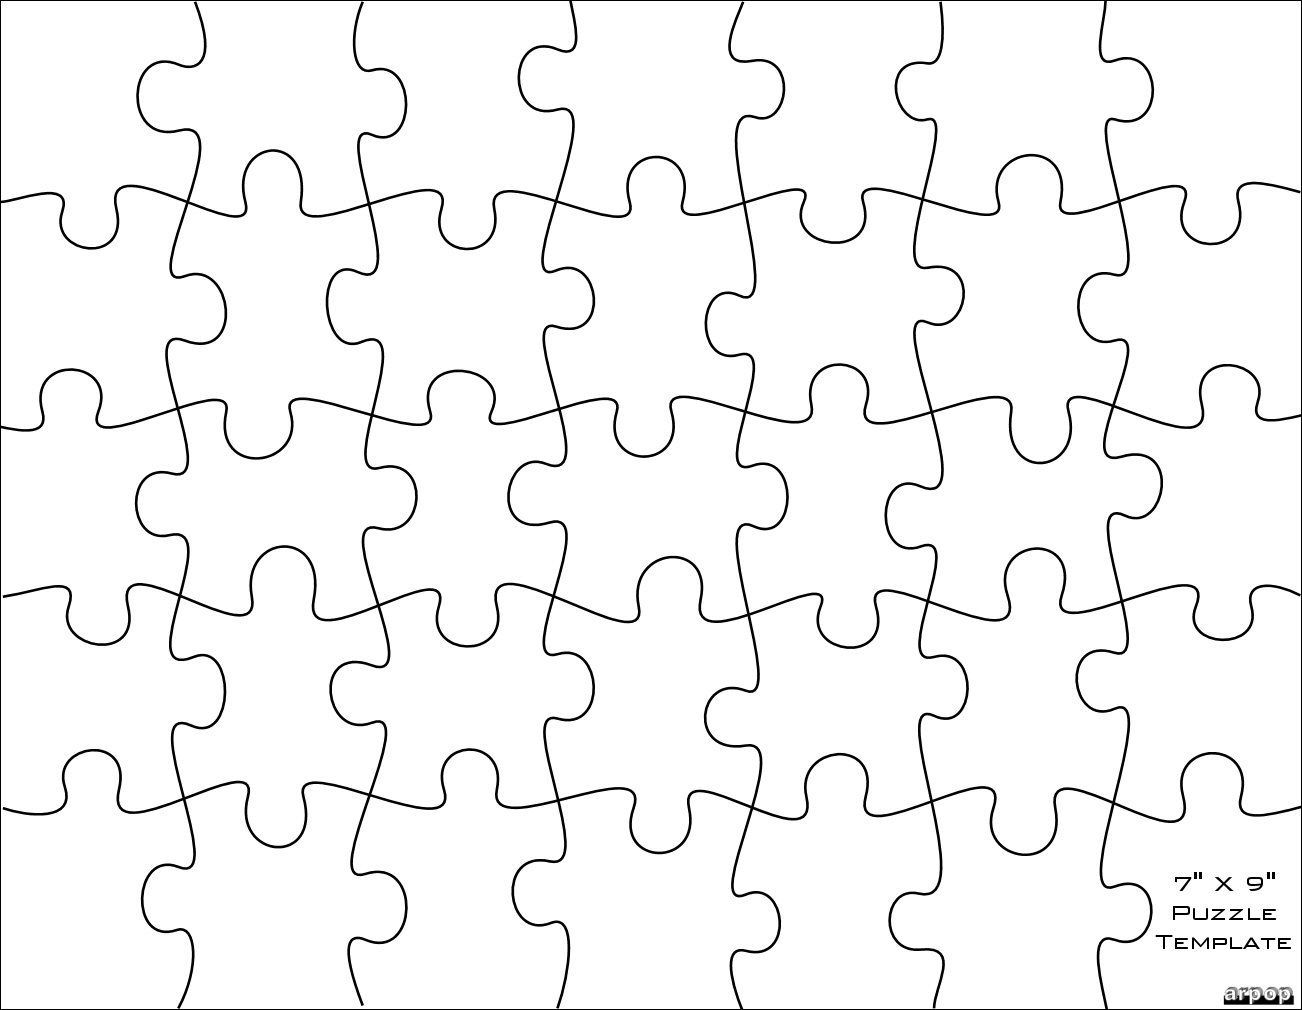 Free Scroll Saw Patternsarpop: Jigsaw Puzzle Templates | School - Printable Puzzle Jigsaw